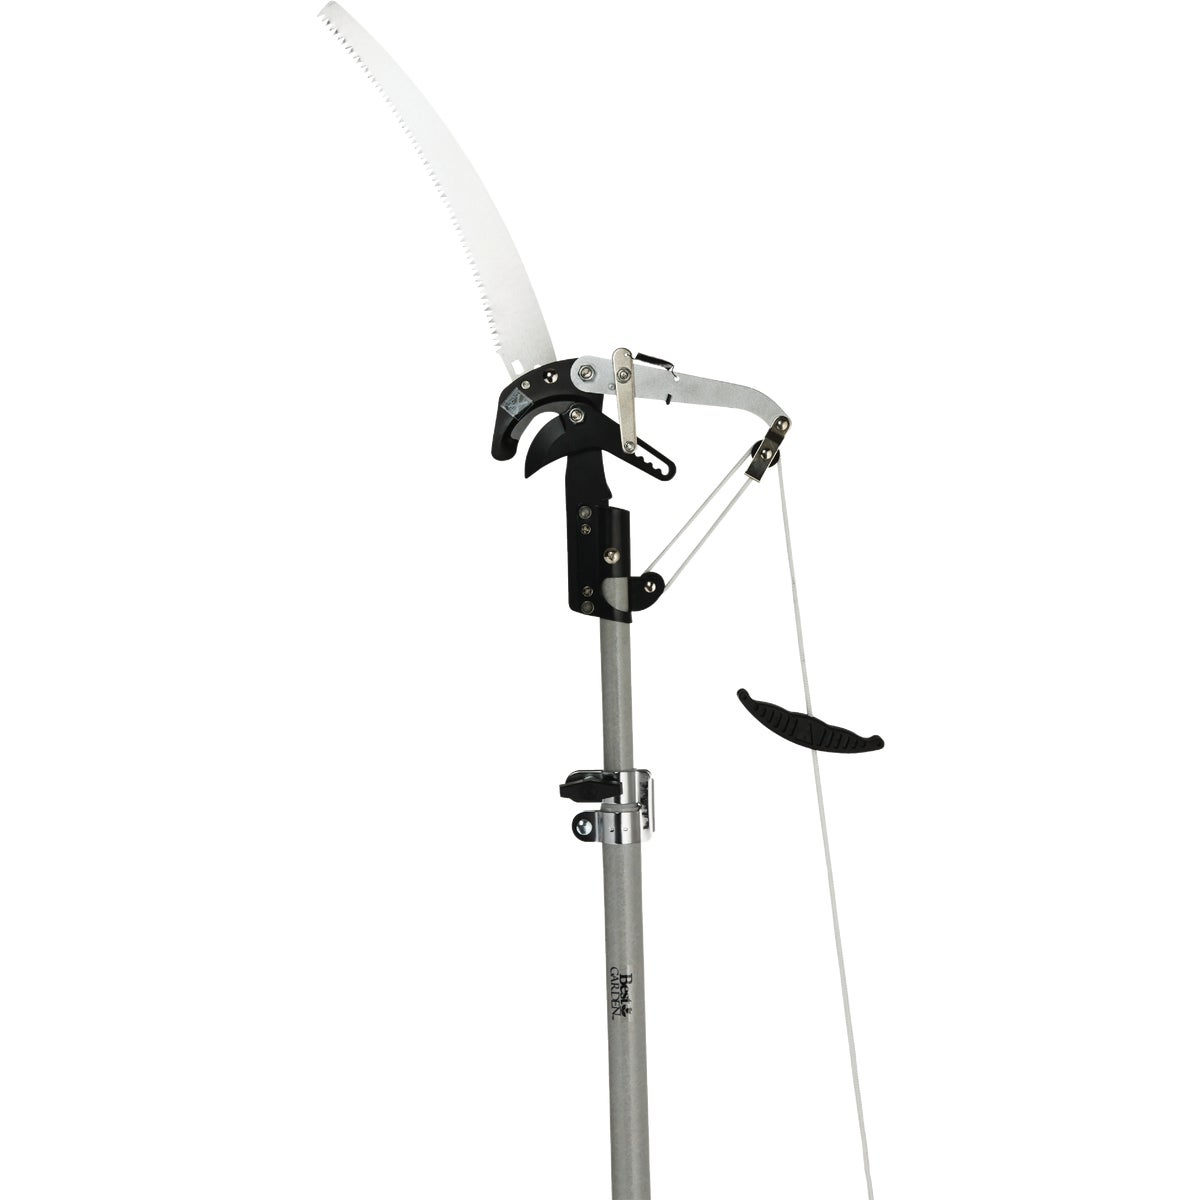 12'FBRG POLE TREE PRUNER